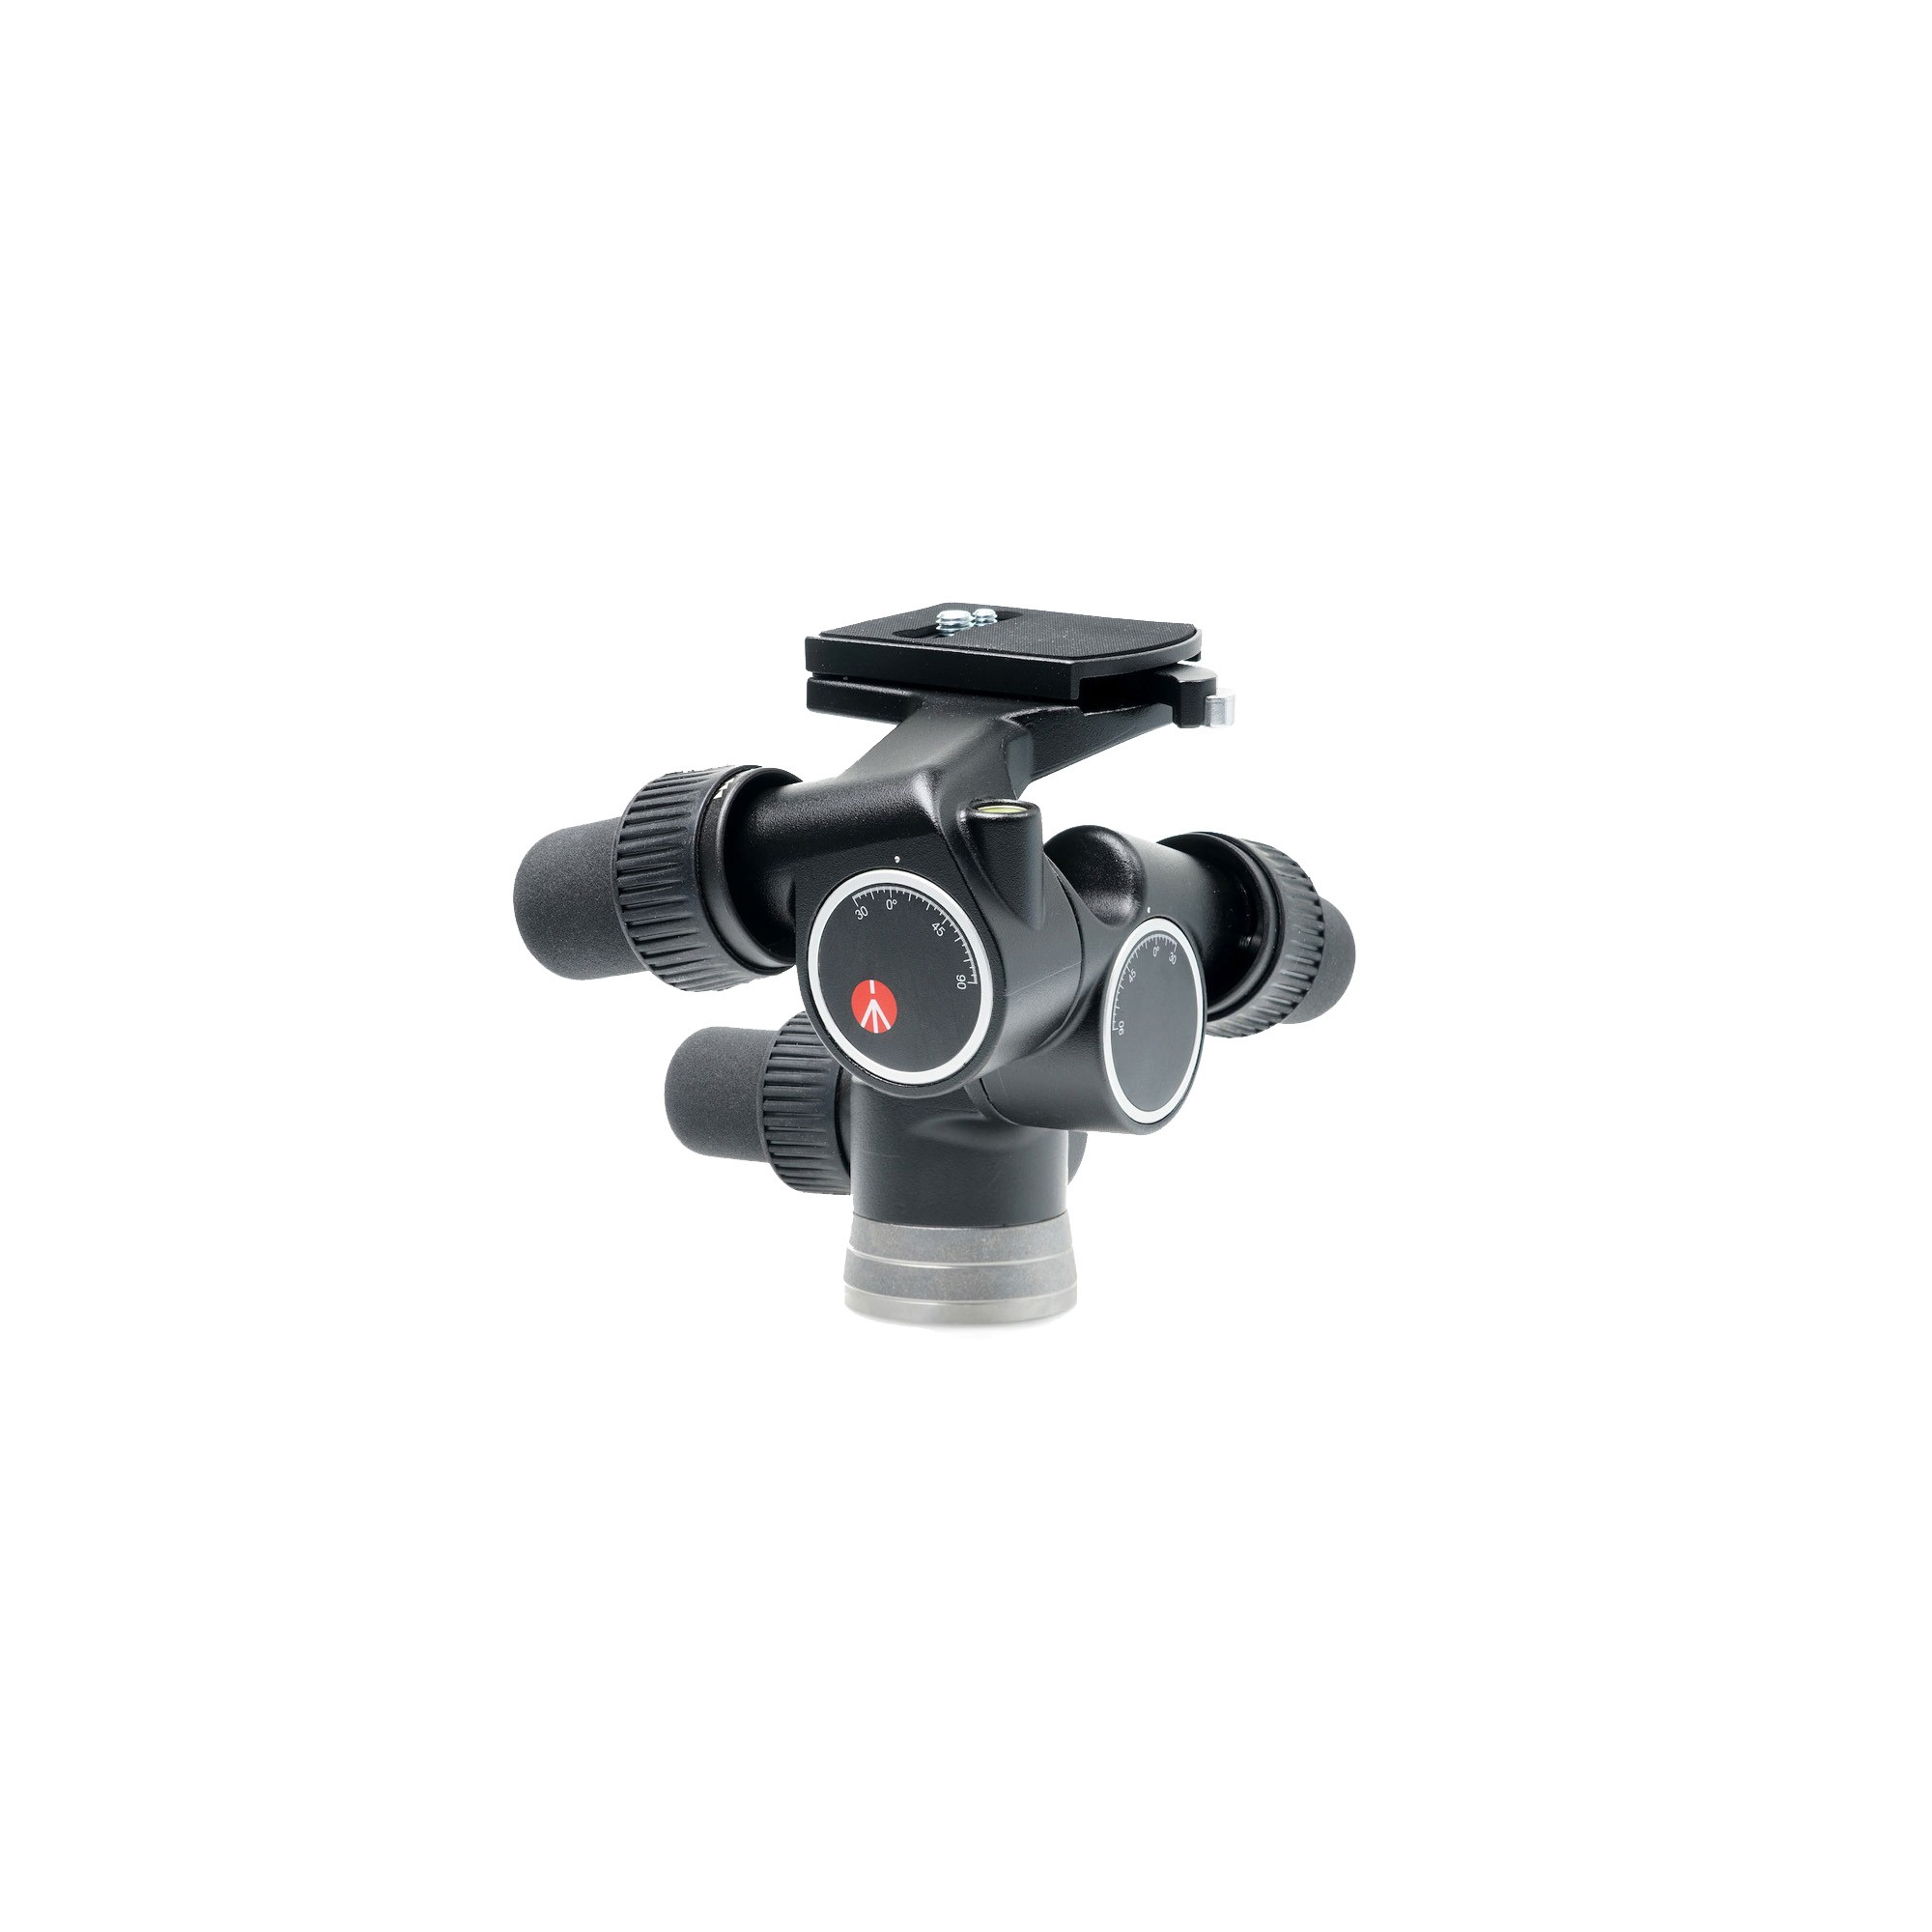 Manfrotto Geared Tripod head 405 available to rent / verhuur / location at 50.8 Studio • Belgïe, Belgique, Belgium, Grip, Huur, Location, Louer, Manfrotto, Photo, Rent, Rental, Stand, Studio, Verhuur, Video